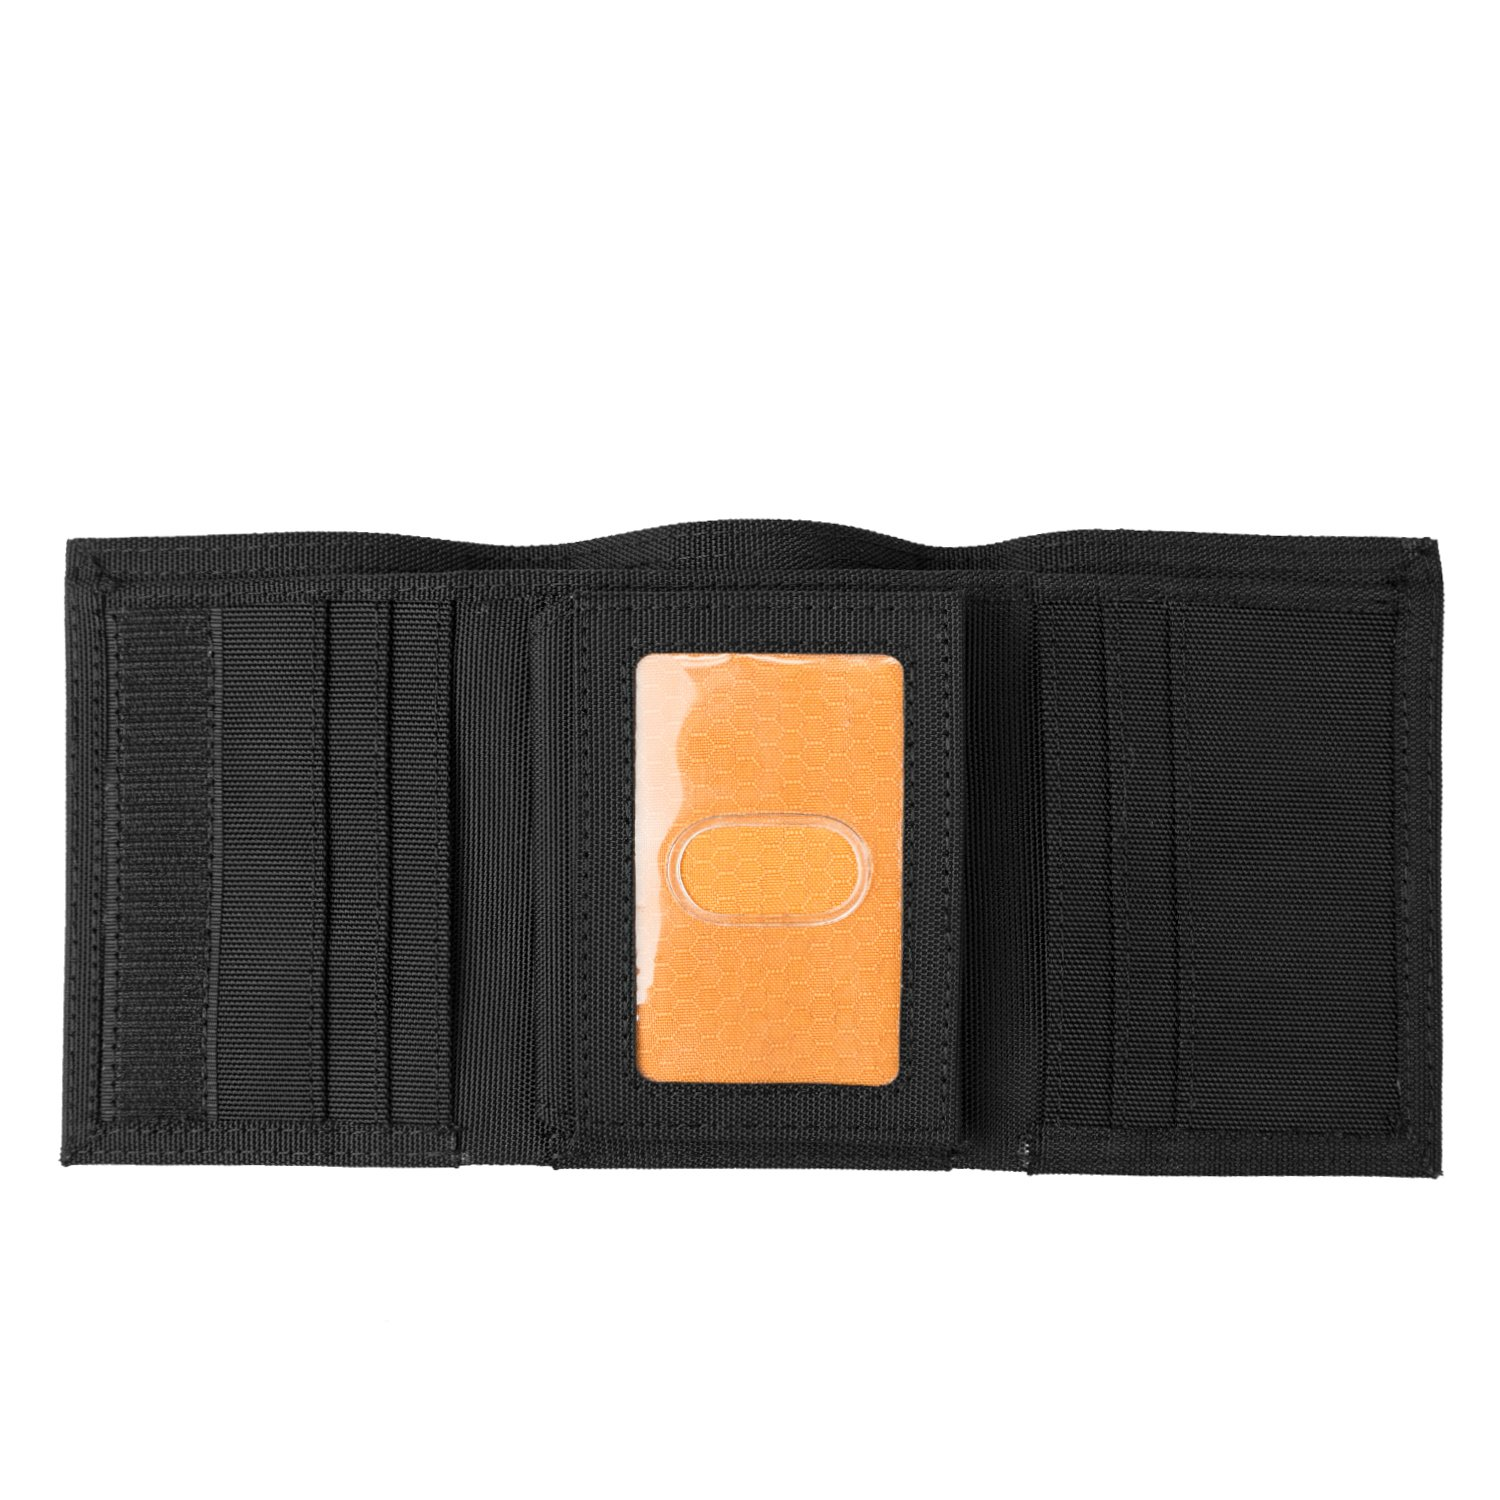 Timberland PRO Men's Cordura Velcro Nylon Rfid Trifold Wallet with ID Window, Black, One Size by Timberland PRO (Image #2)